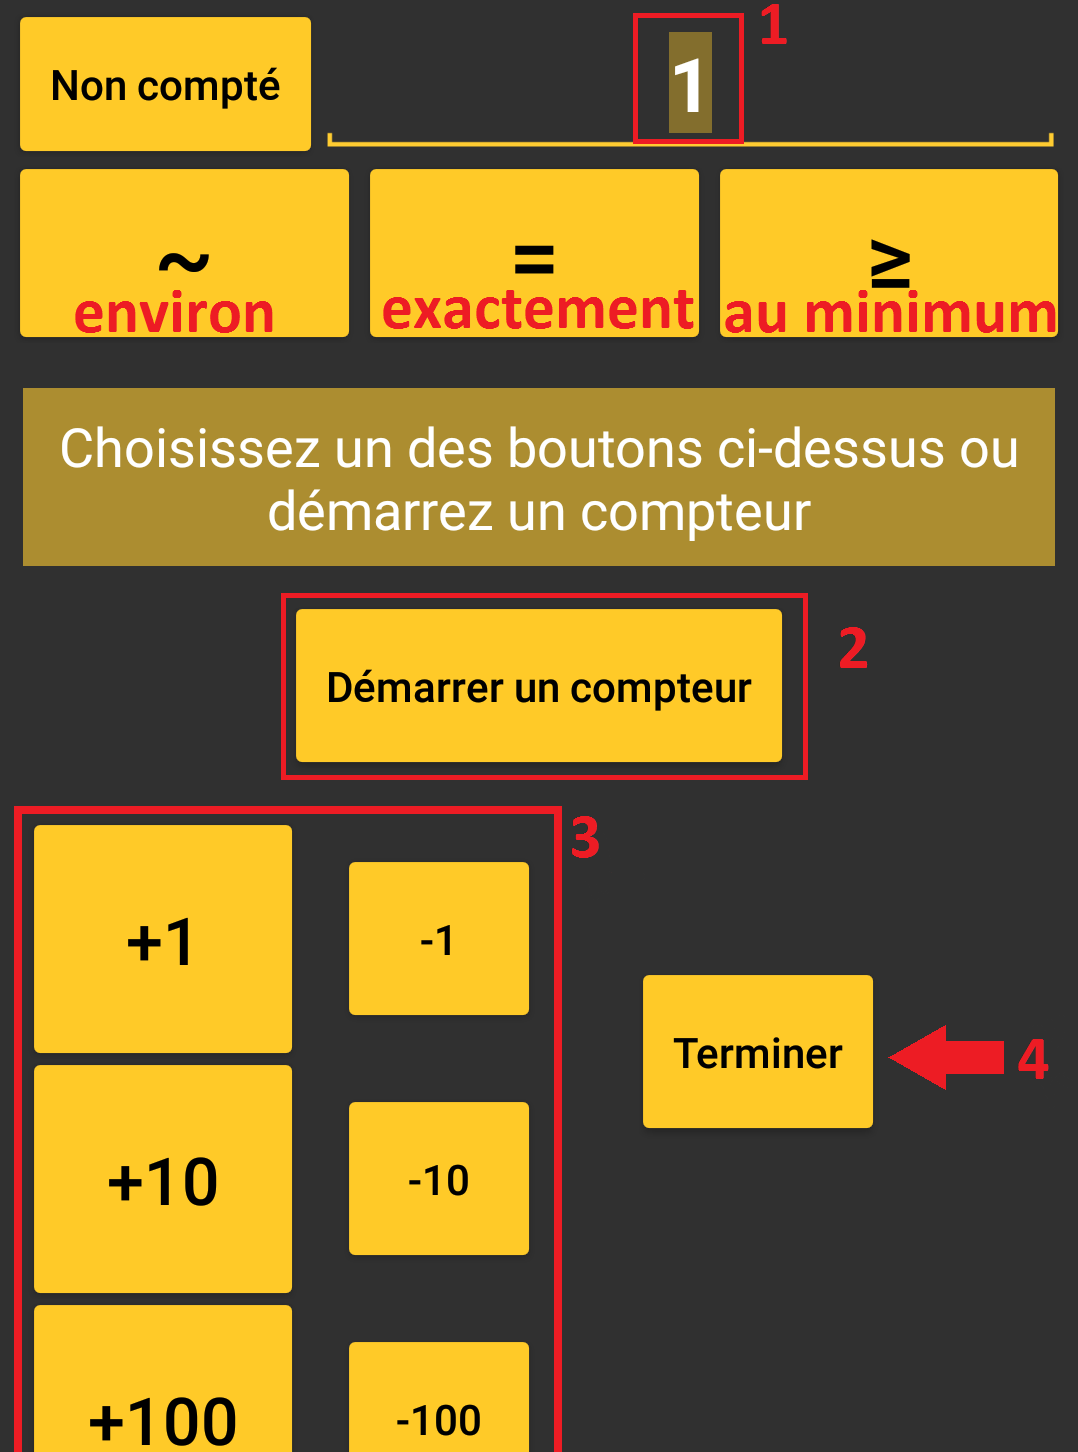 http://files.biolovision.net/www.faune-france.org/userfiles/ListeNaturaList/5-effectif-compteur.png